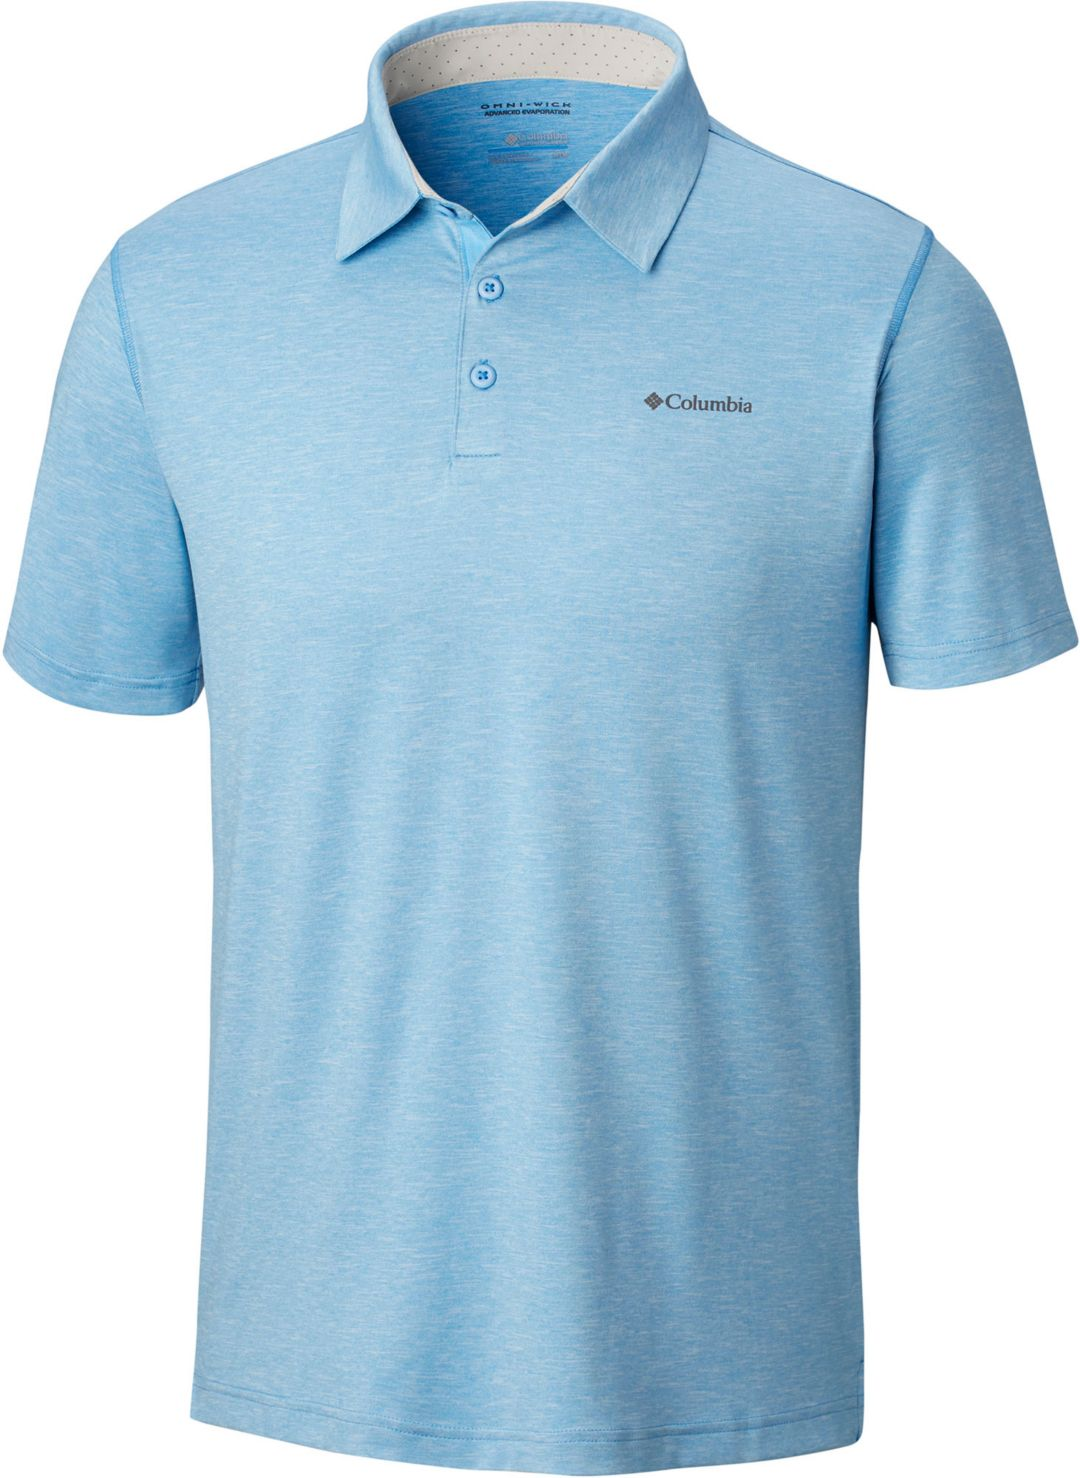 48aaa9660a6 Columbia Men's Tech Trail Polo | Field & Stream